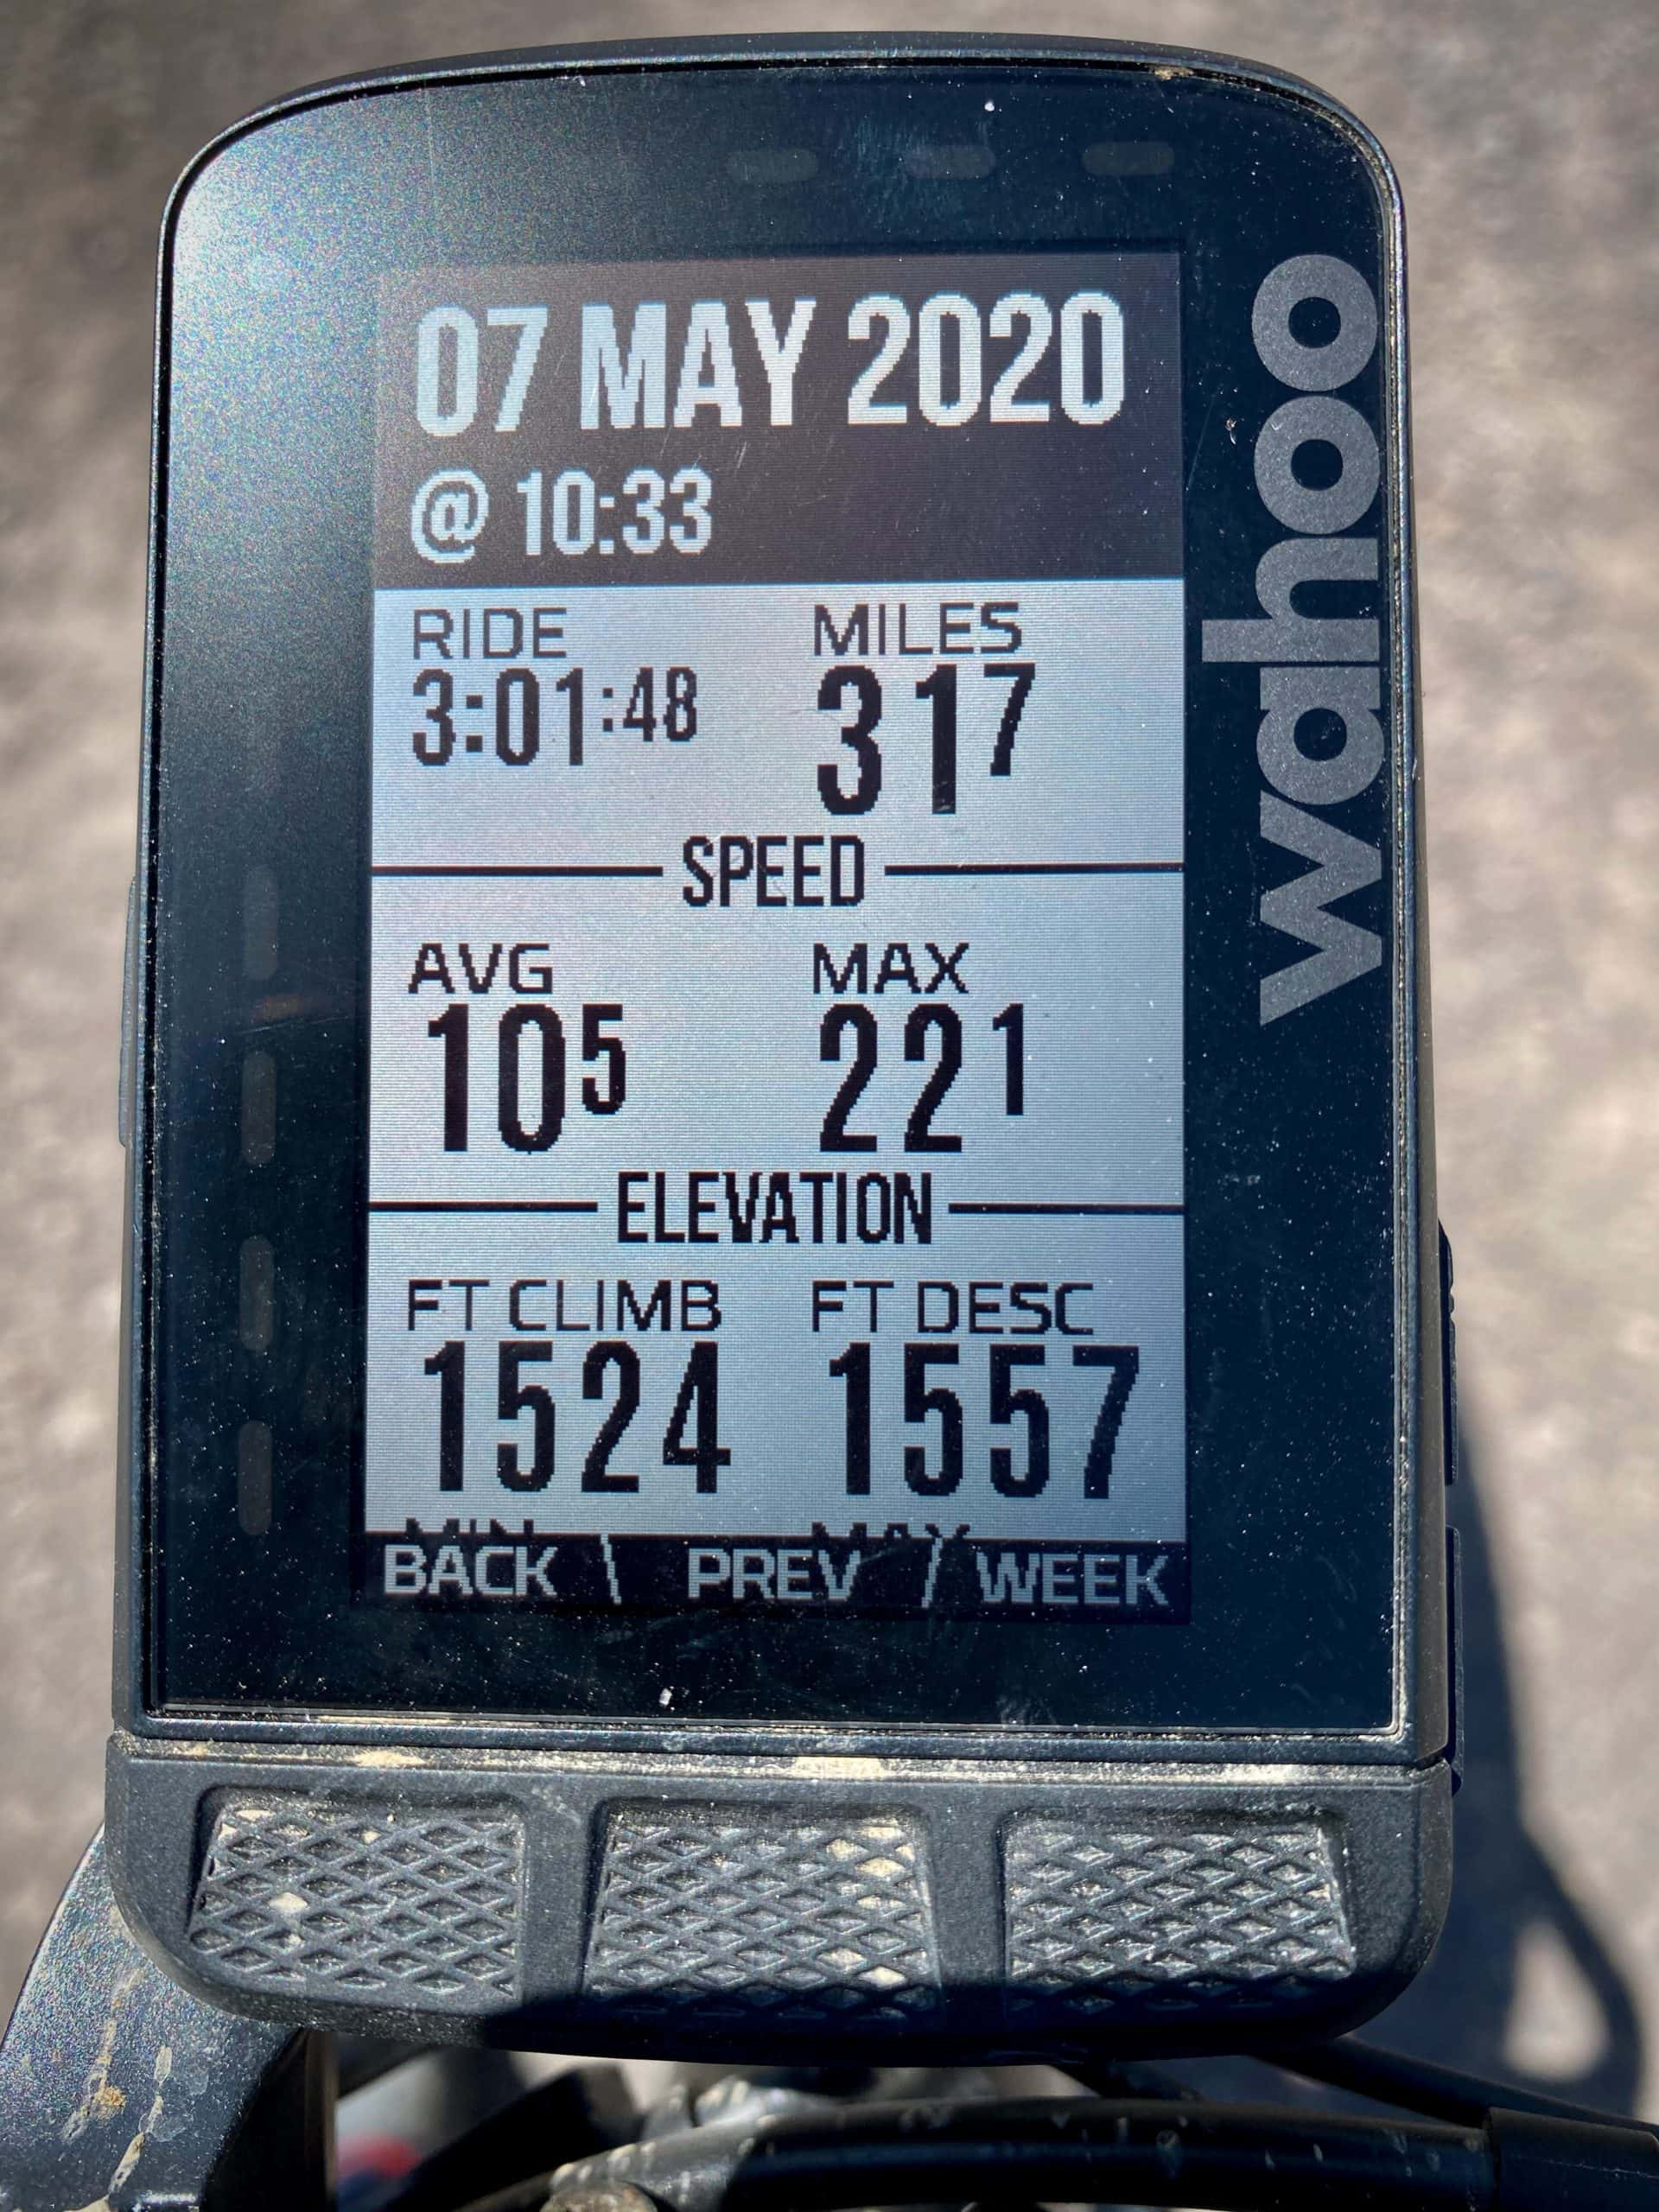 Gravel Girl's ride metrics for the Pink Lady route found on Dirty Freehub.